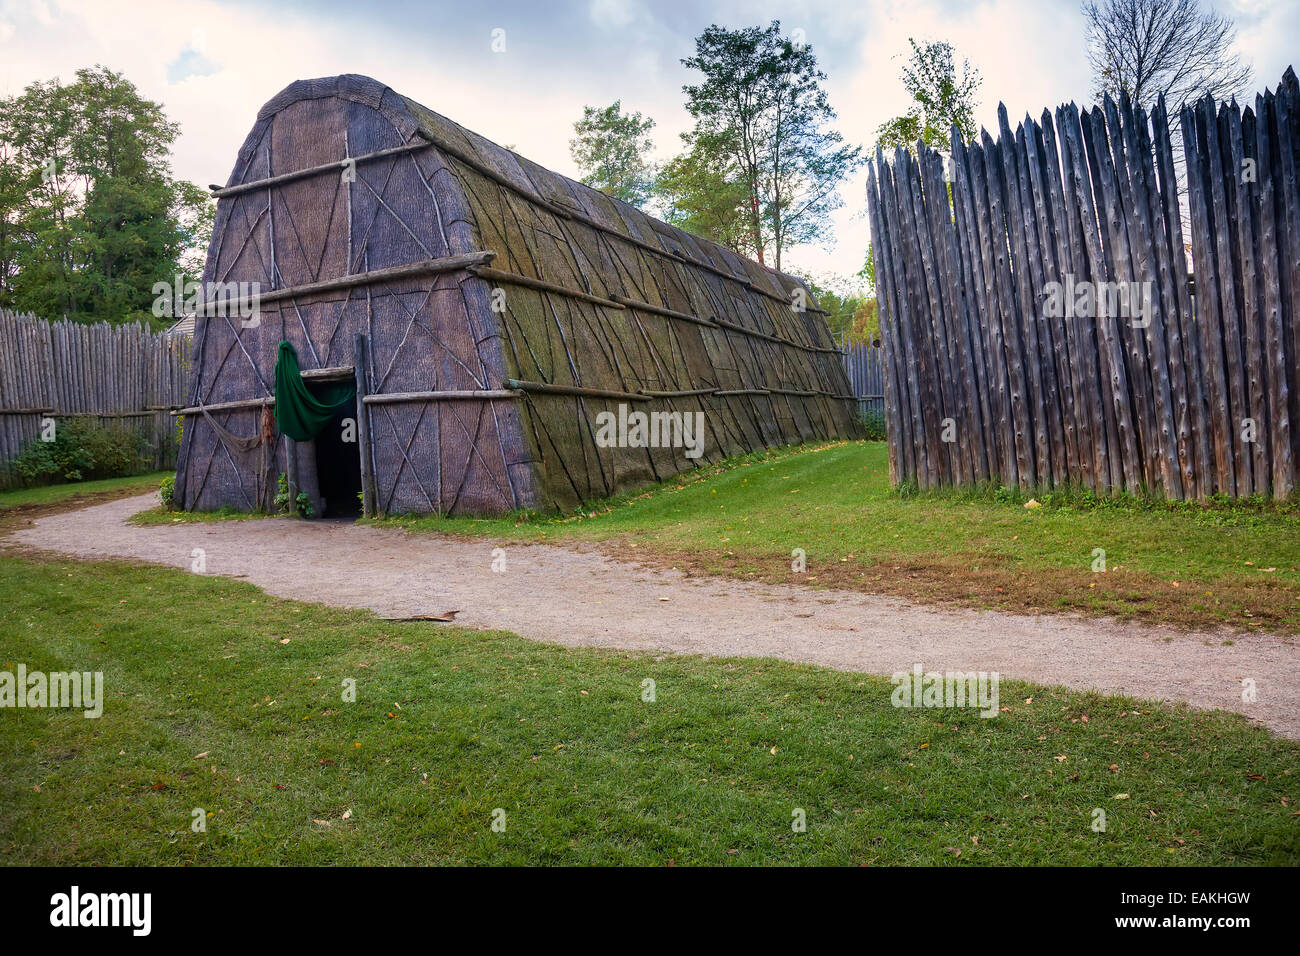 Non-Christian Longhouse at Sainte Marie among the Hurons;Original authentic Native Indian Village Midland;Ontario;Canada - Stock Image